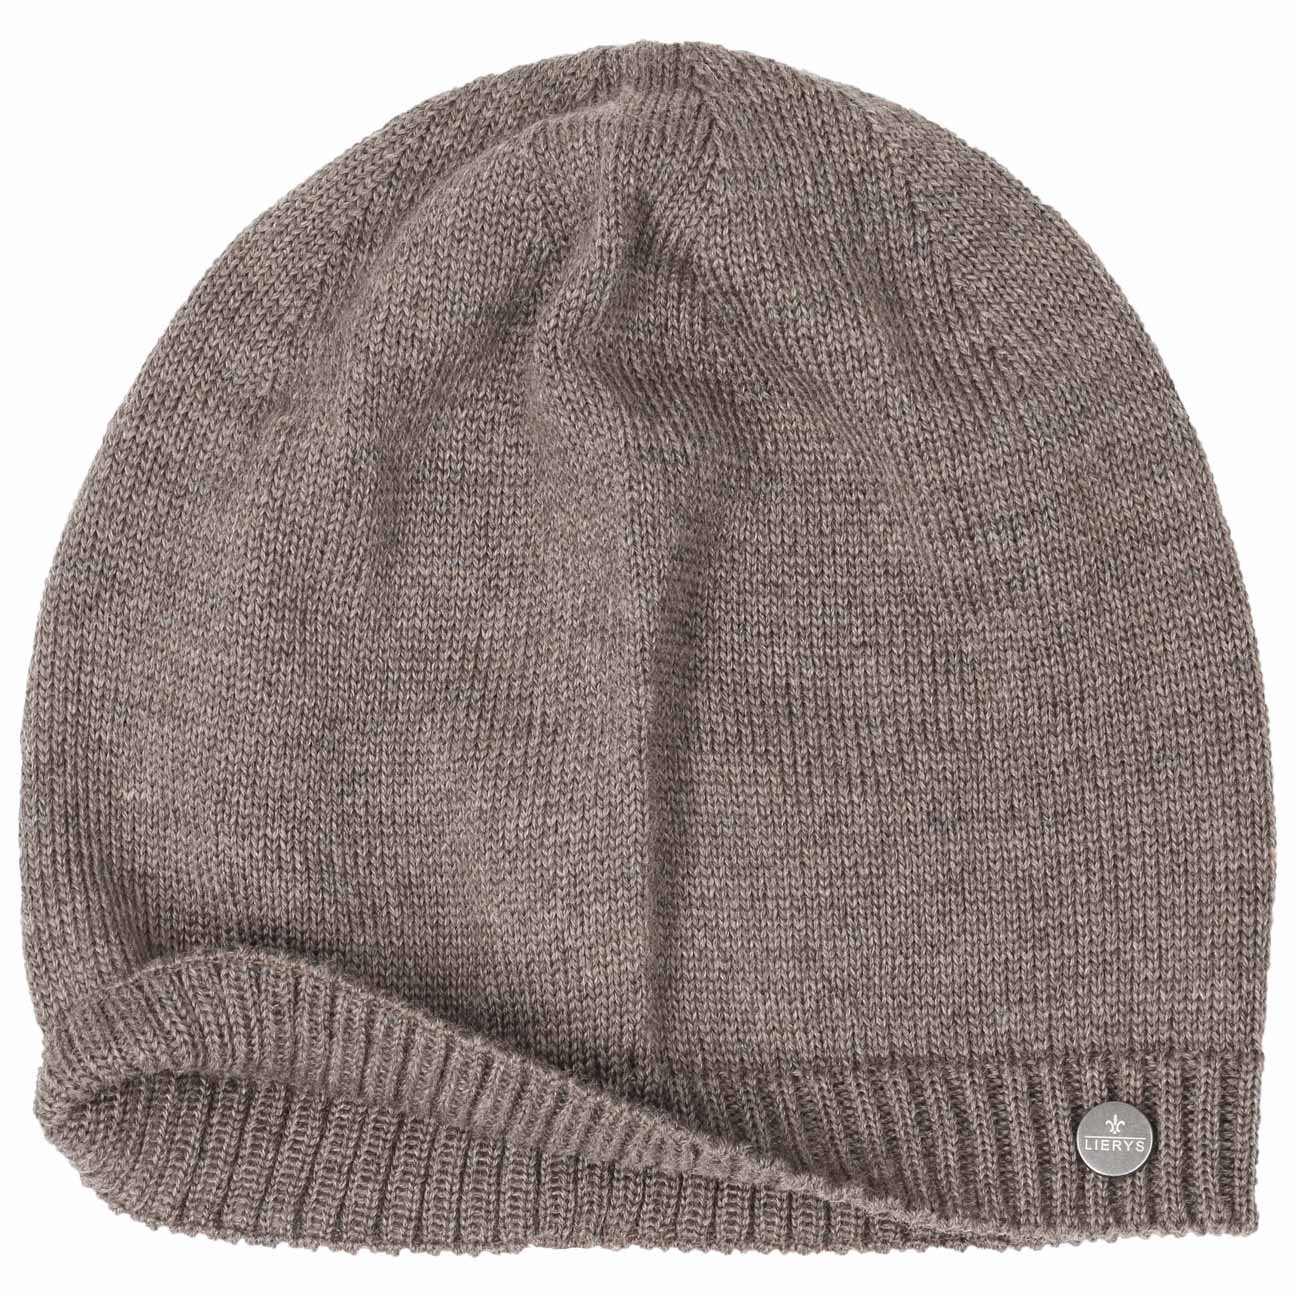 eff01722dc9ec Lierys Bonnet en Tricot Classic Merino by Femme/Homme | Made in Germany pour  l'hiver Printemps-ete | Taille Unique Marron: Amazon.fr: Vêtements et ...